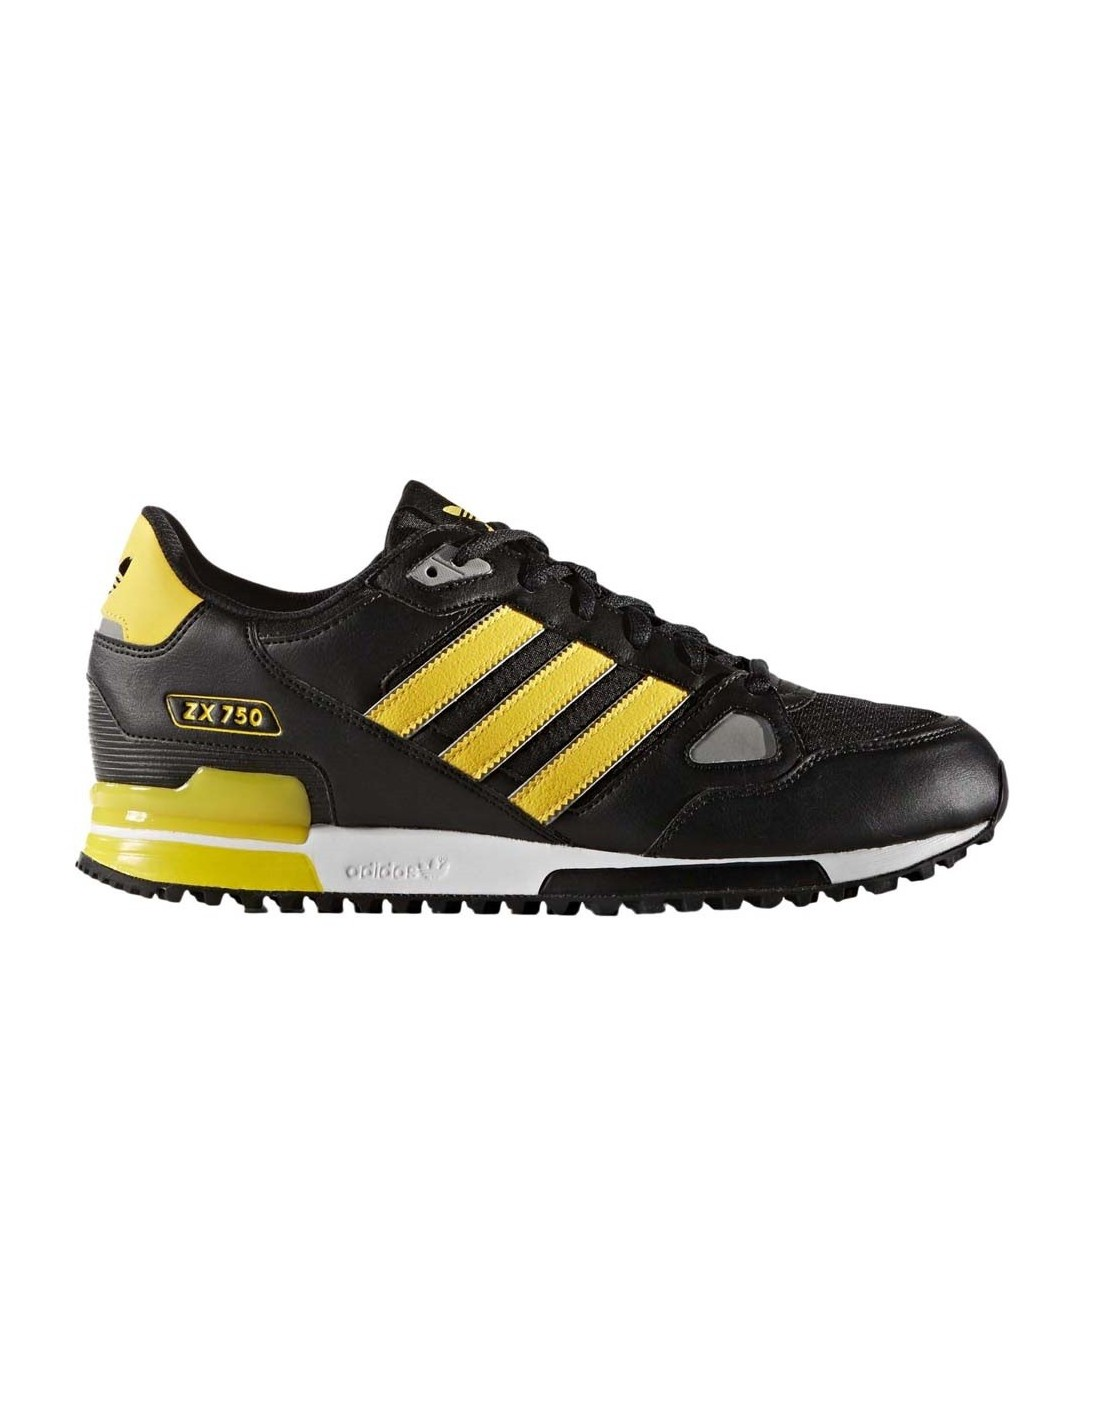 new style 7ce36 b54e1 nuove adidas zx 750